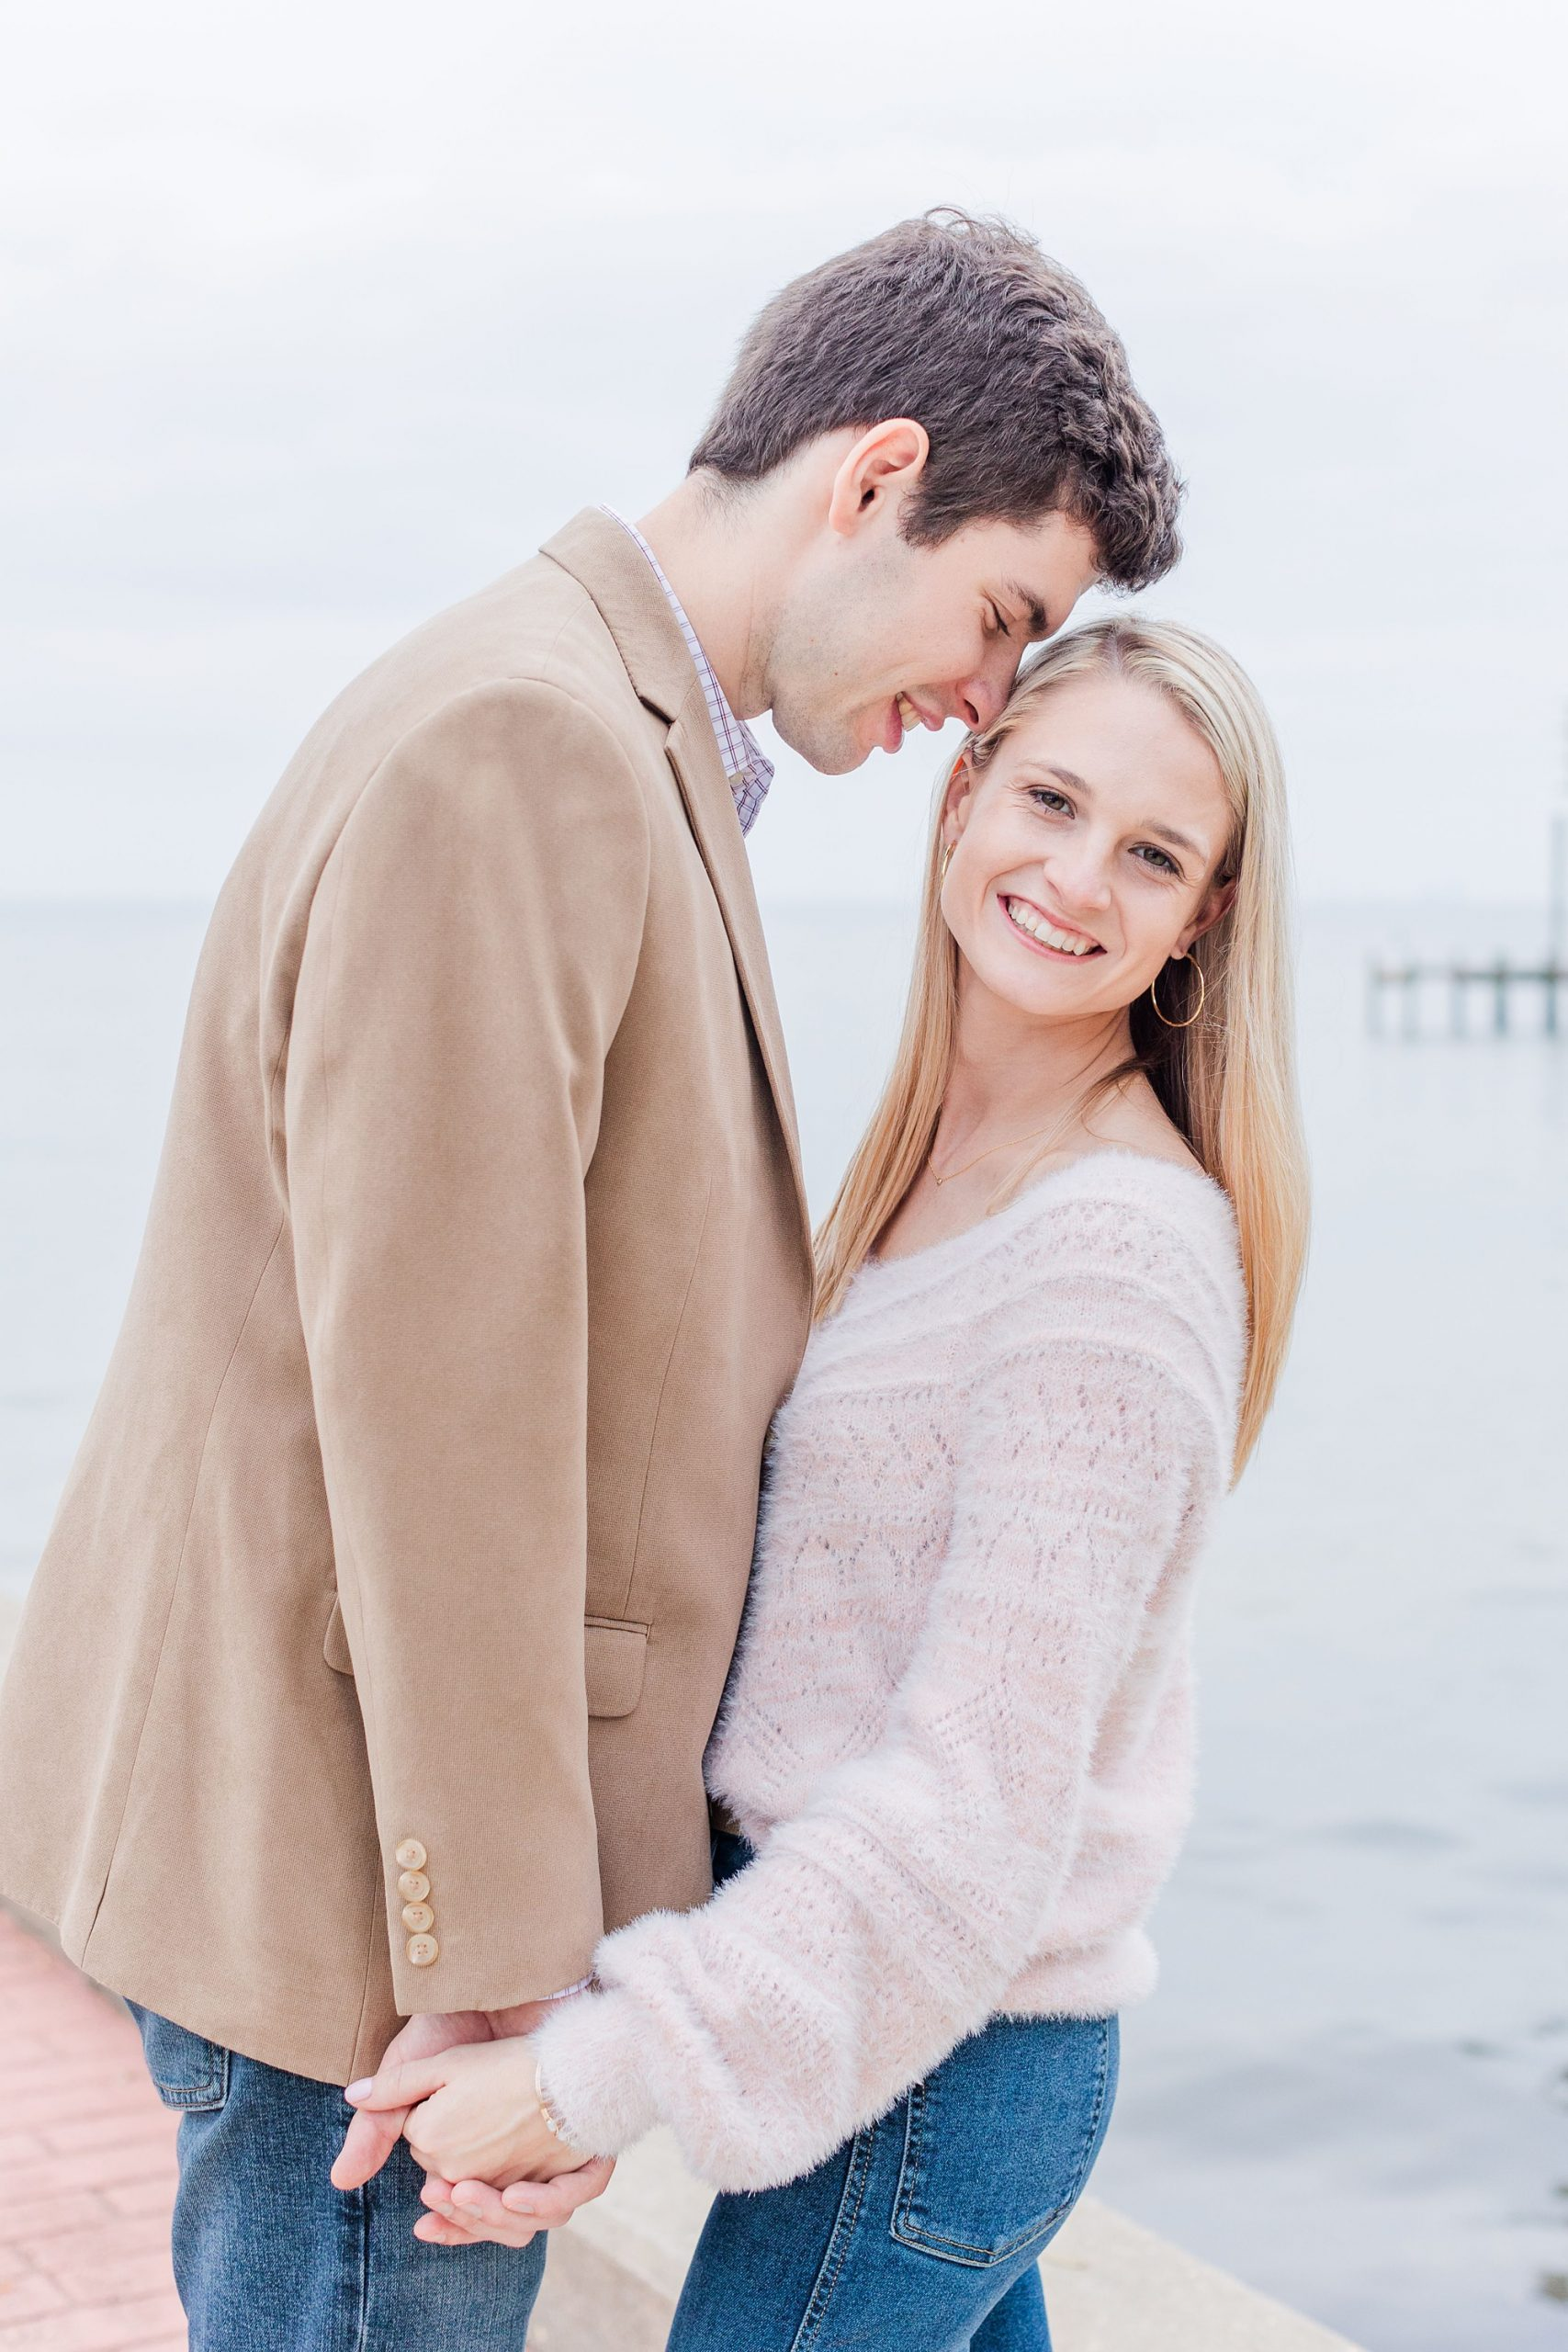 groom nuzzles bride during AL engagement portraits along Mobile Bay